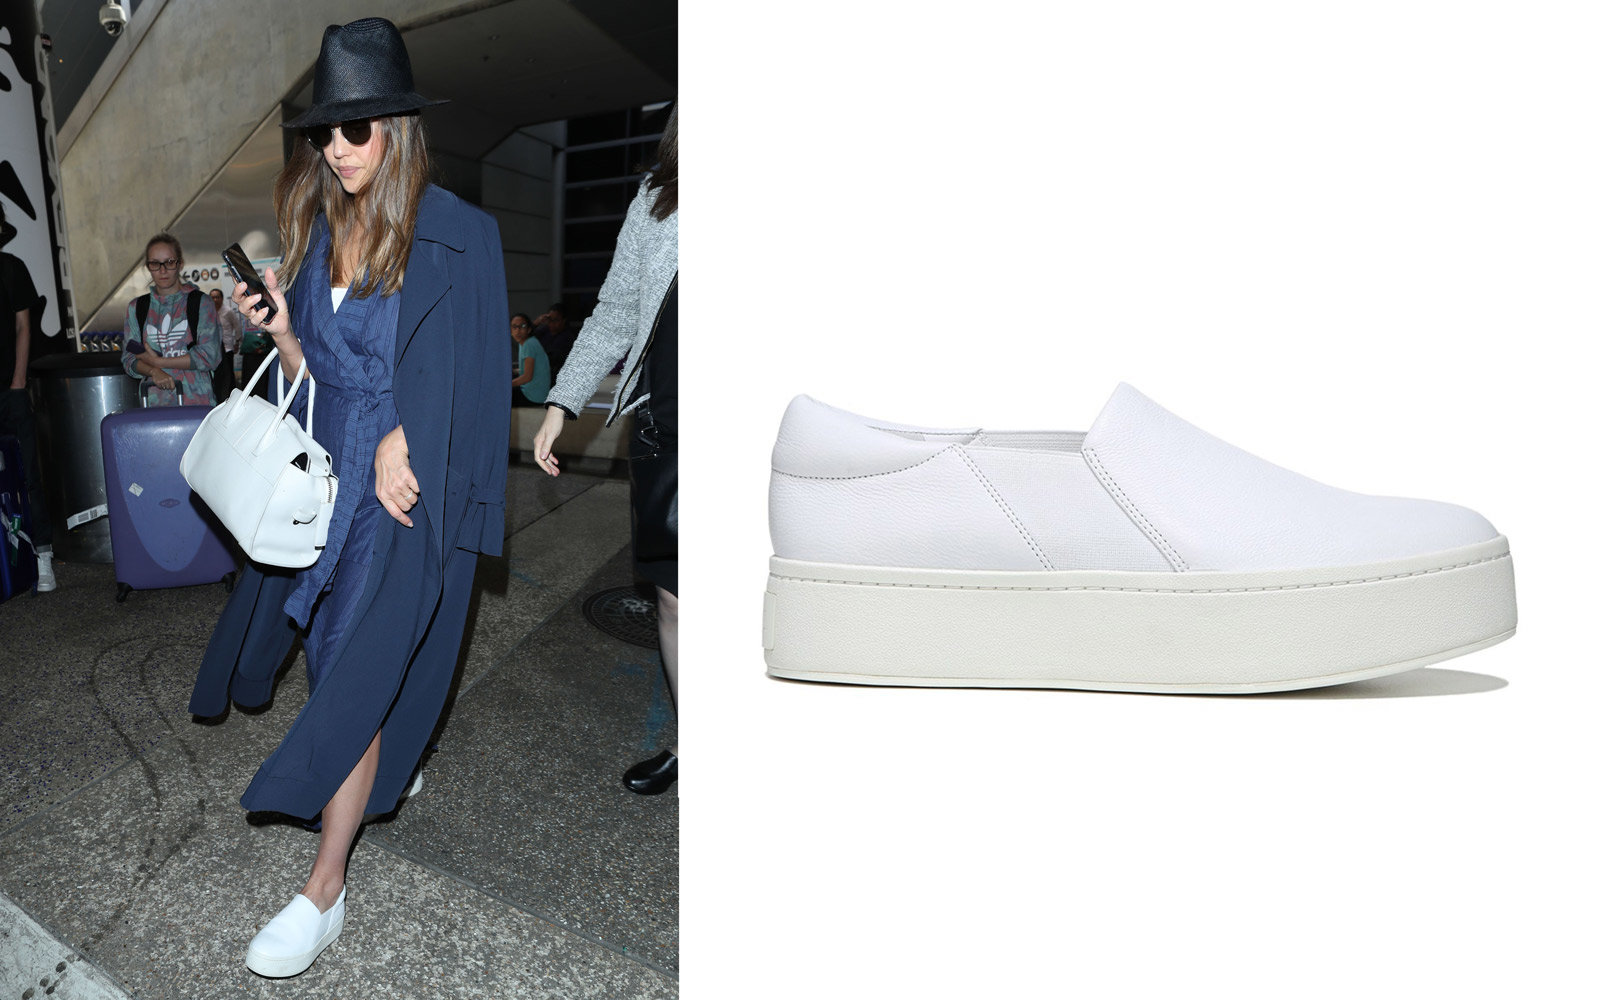 e6602edb1 The Stylish Comfy Shoes That Celebrities Wear for Traveling